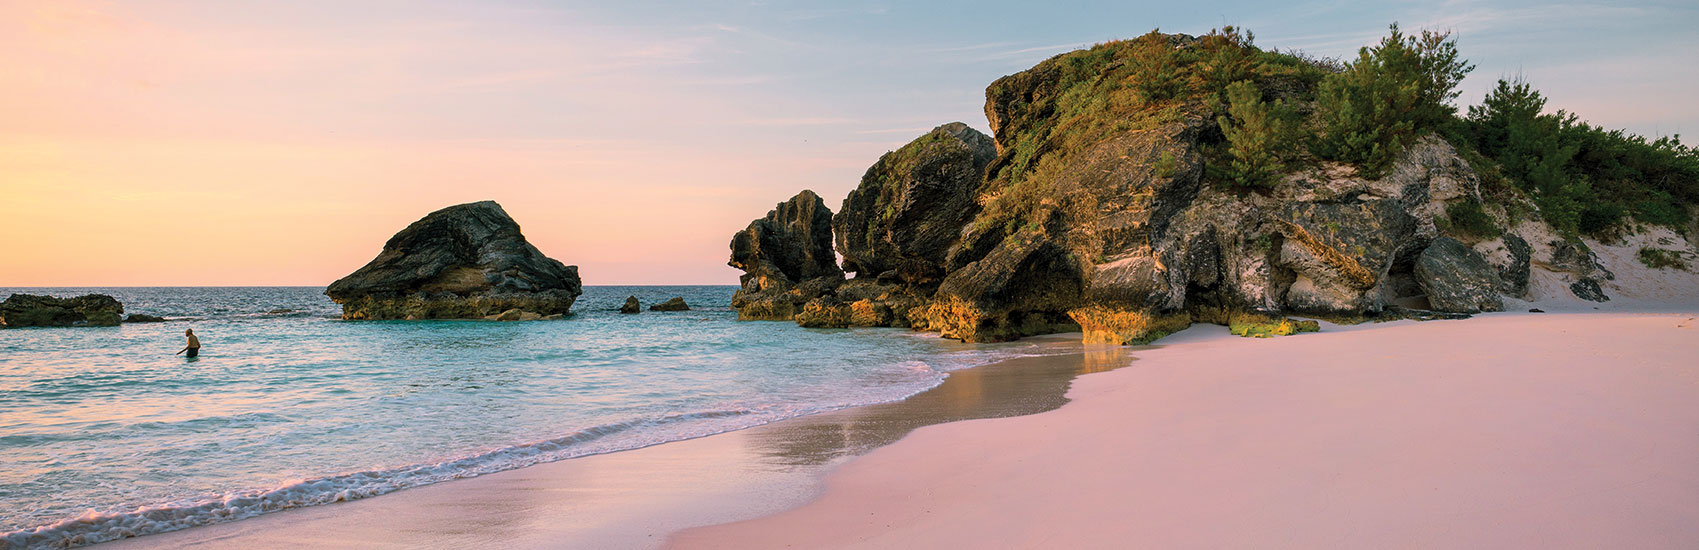 Discover Bermuda with Celebrity Cruises